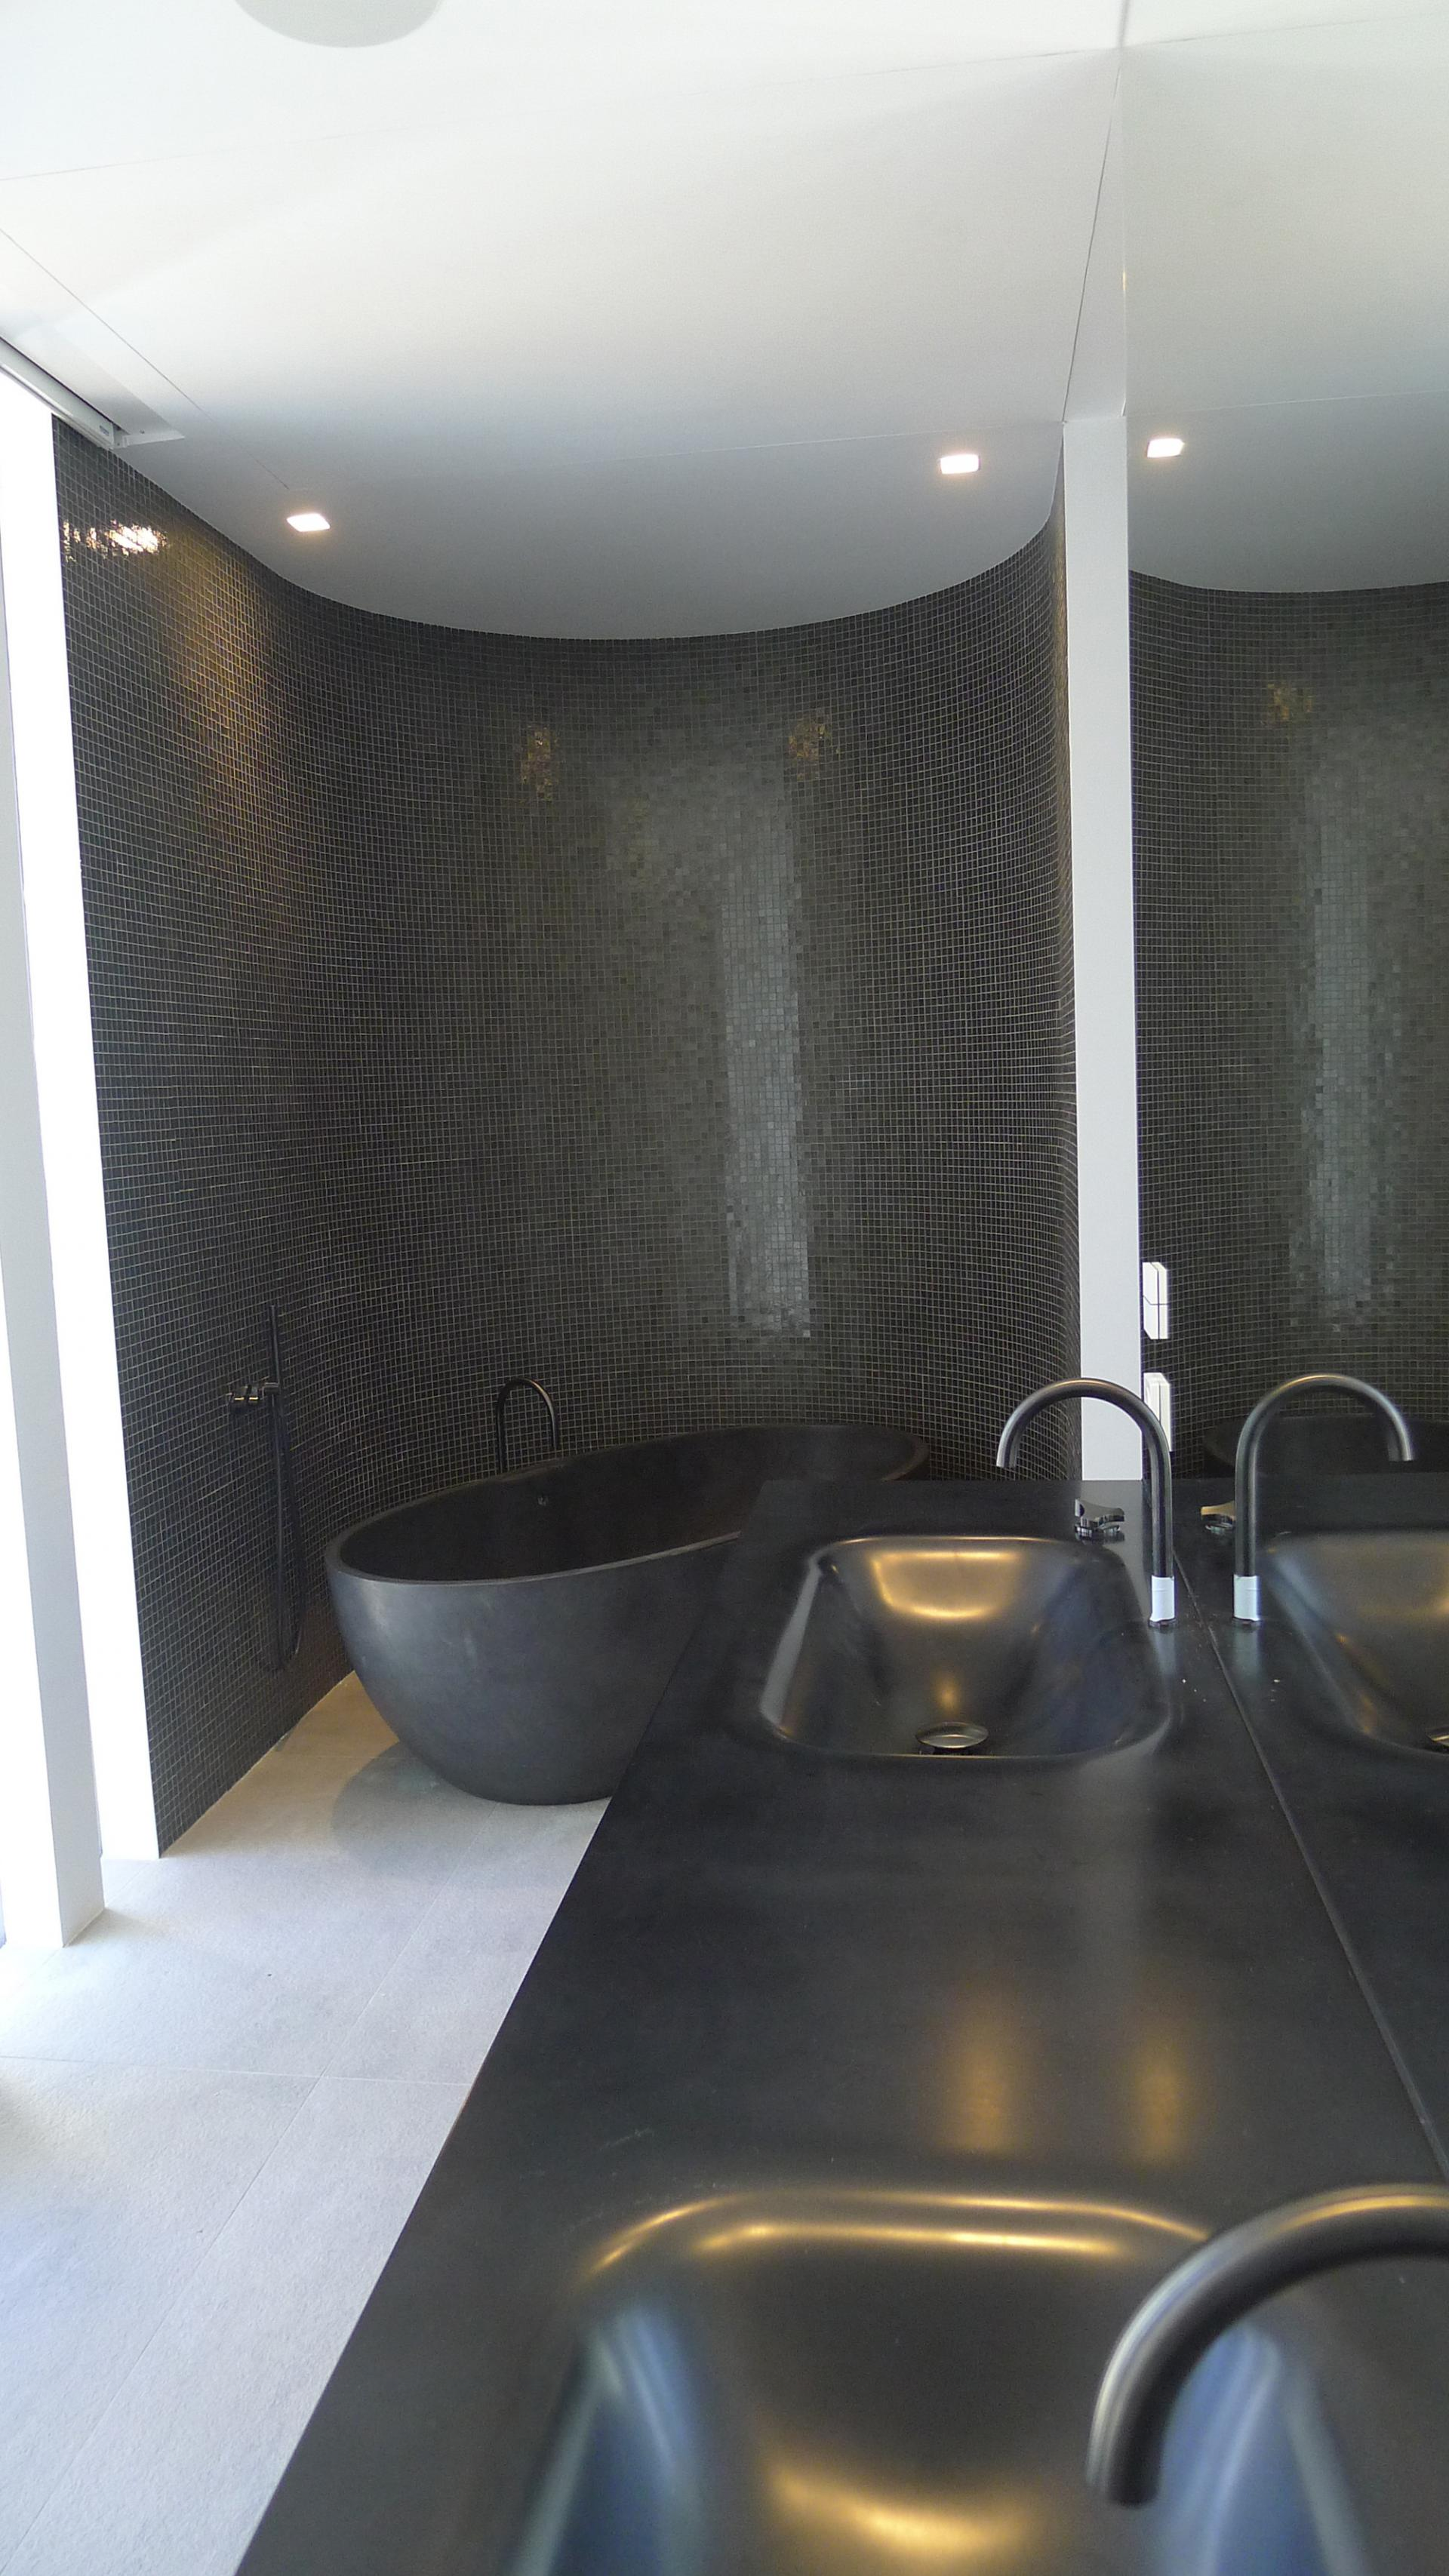 Charcoal Bathroom Ideas - A cool beachfront villa with geometric architecture